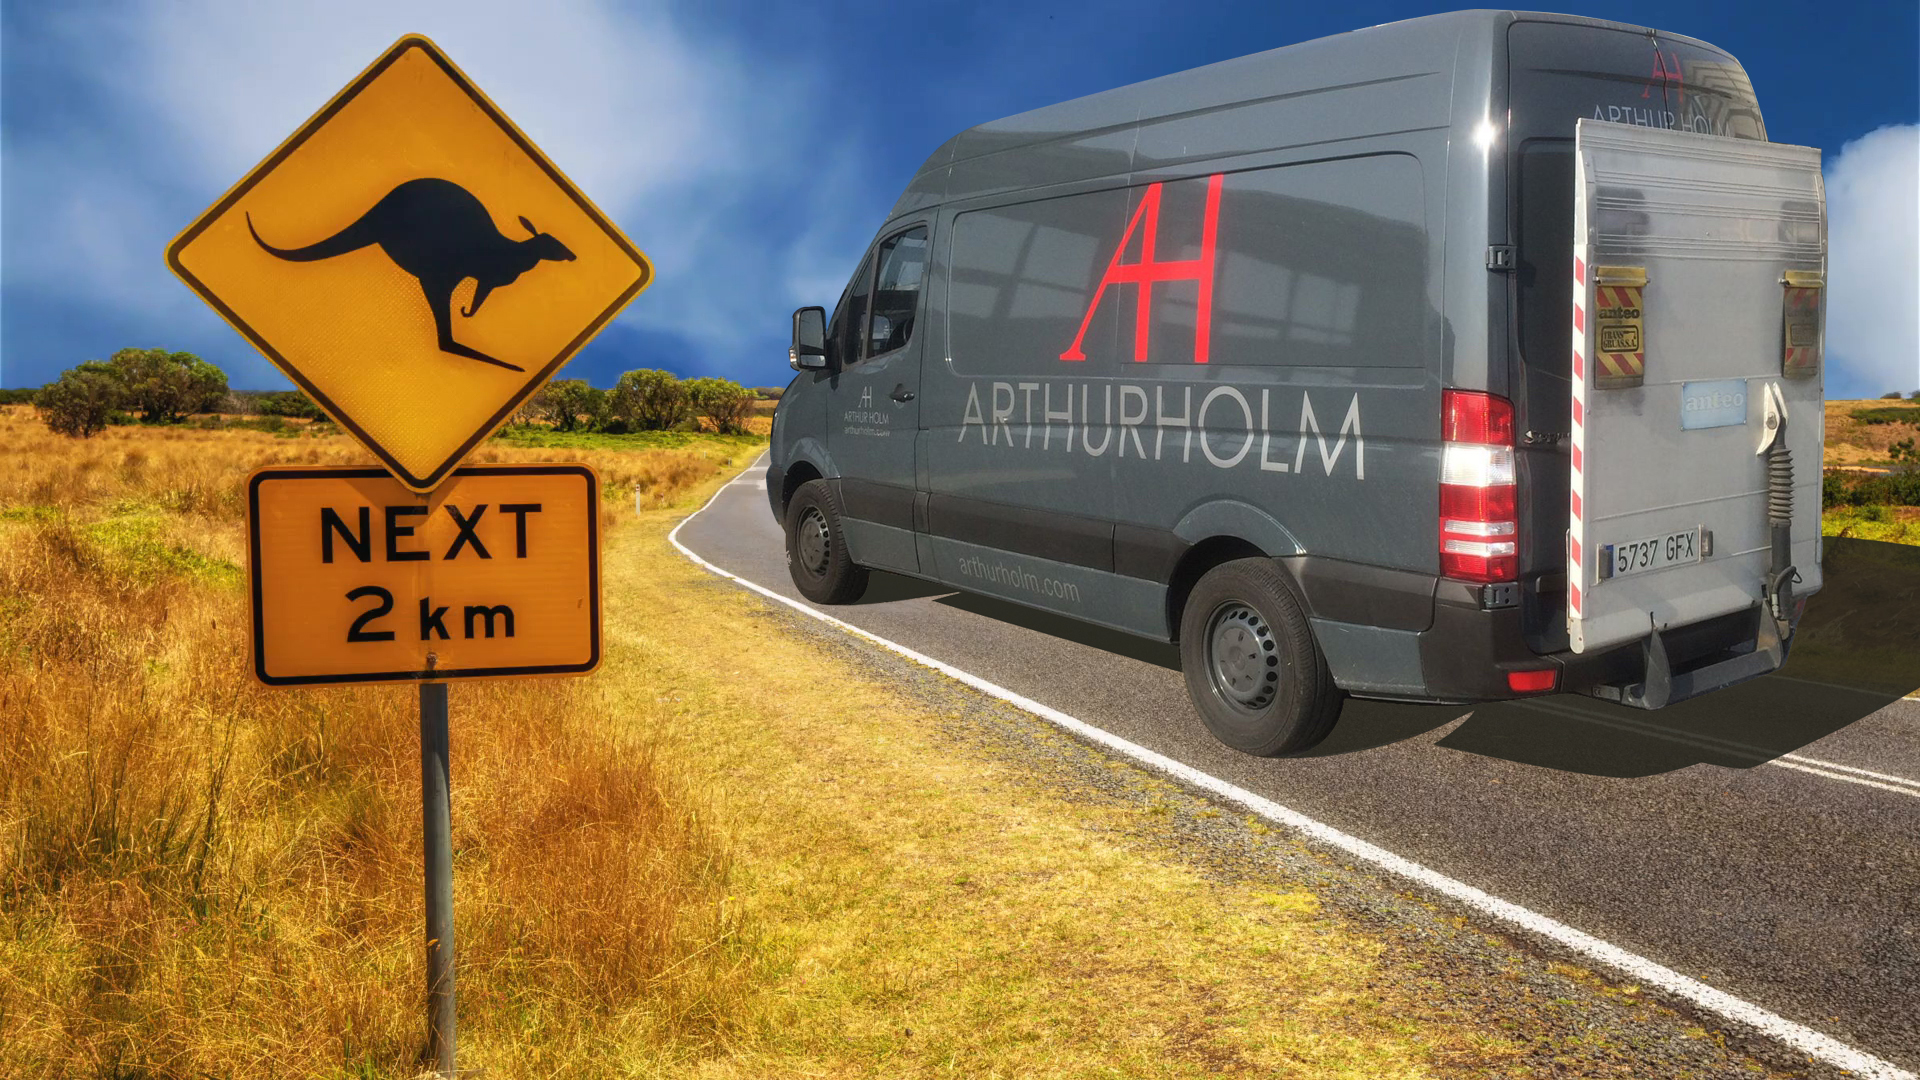 Arthur Holm on tour! Australia Roadshow 2018